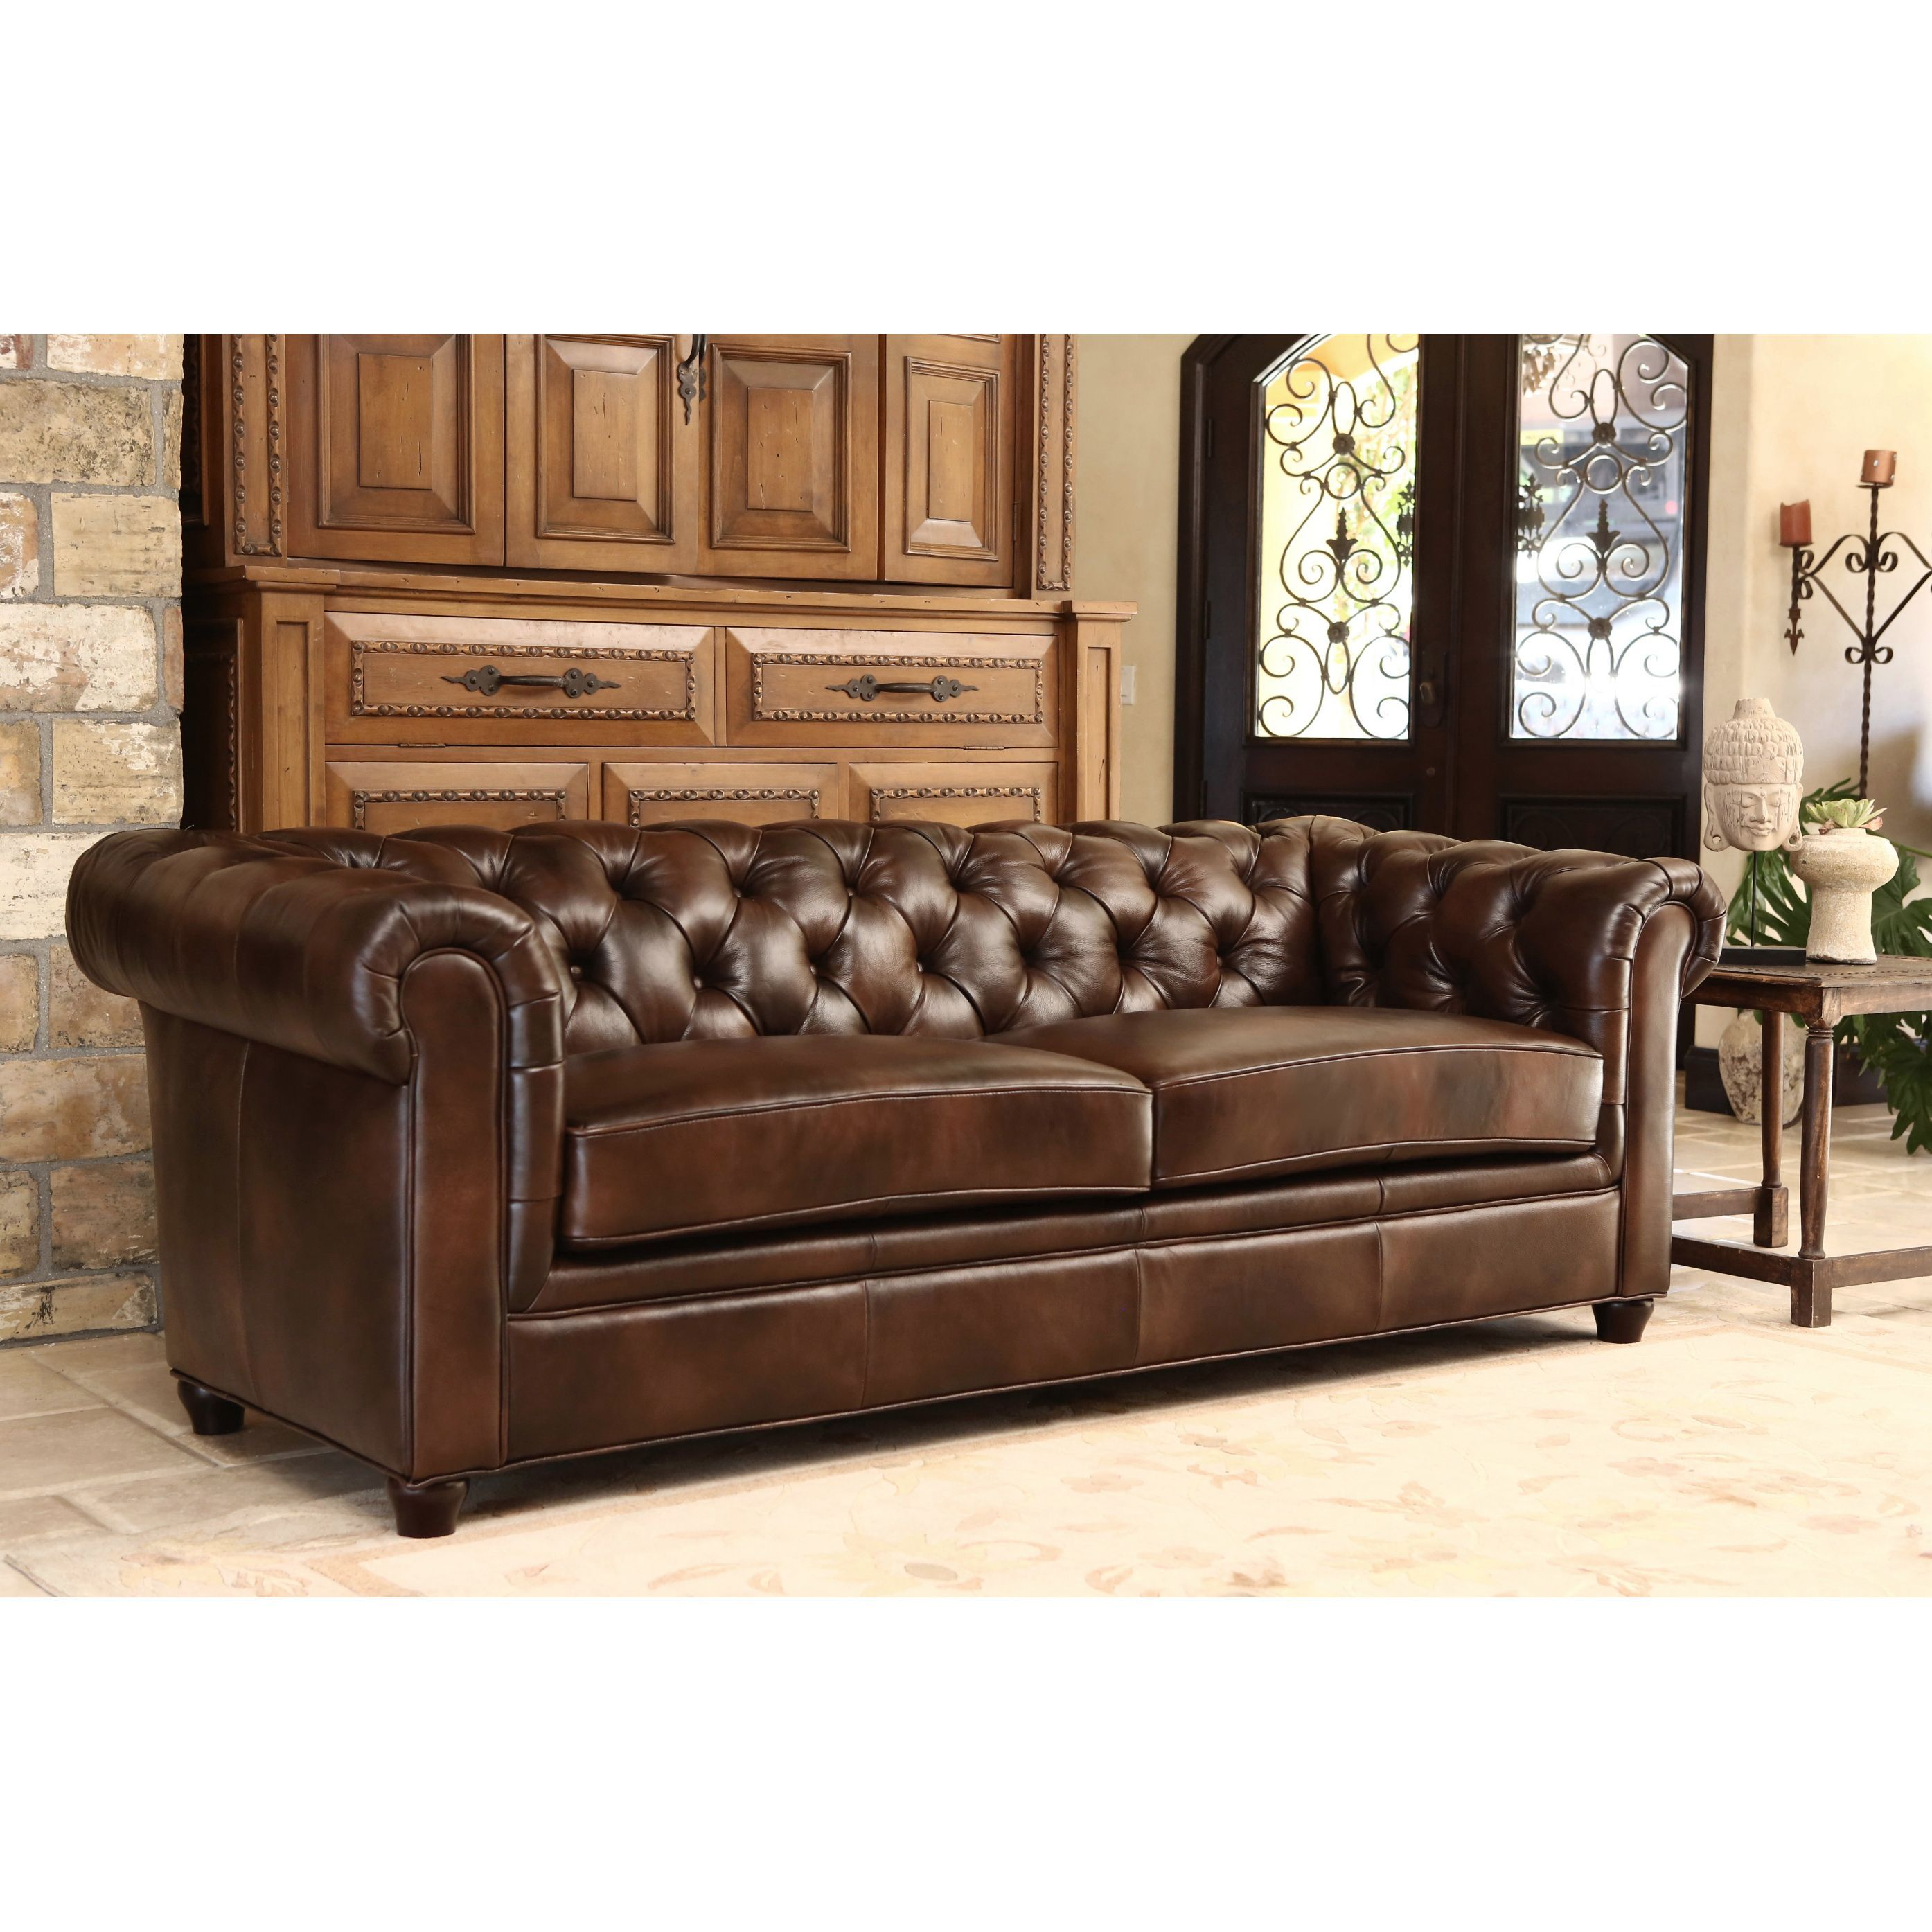 Awesome Abbyson Tuscan Chesterfield Brown Leather Sofa By Abbyson. Sofa Living Room  Furniture: Free Shipping ... Part 29